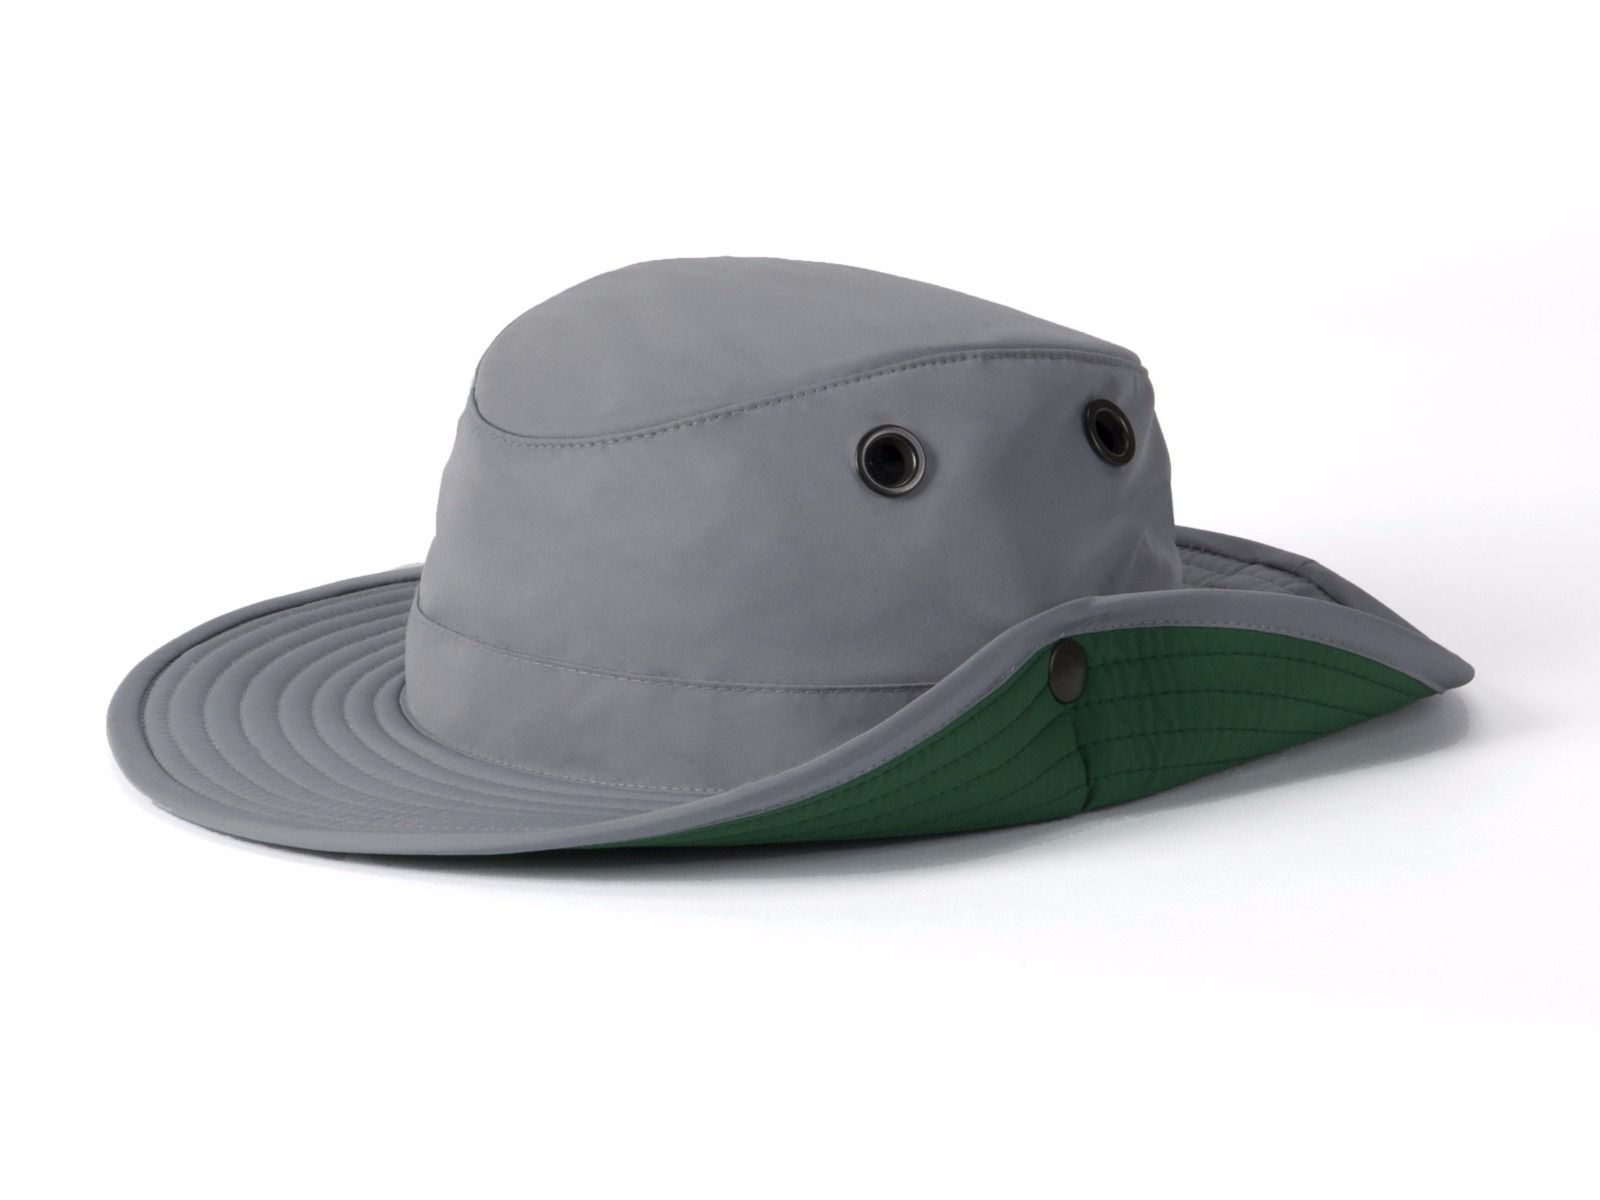 Tilley TWS1 Paddlers Hat - Unisex - Outdoors Oriented debf8ac8b2a